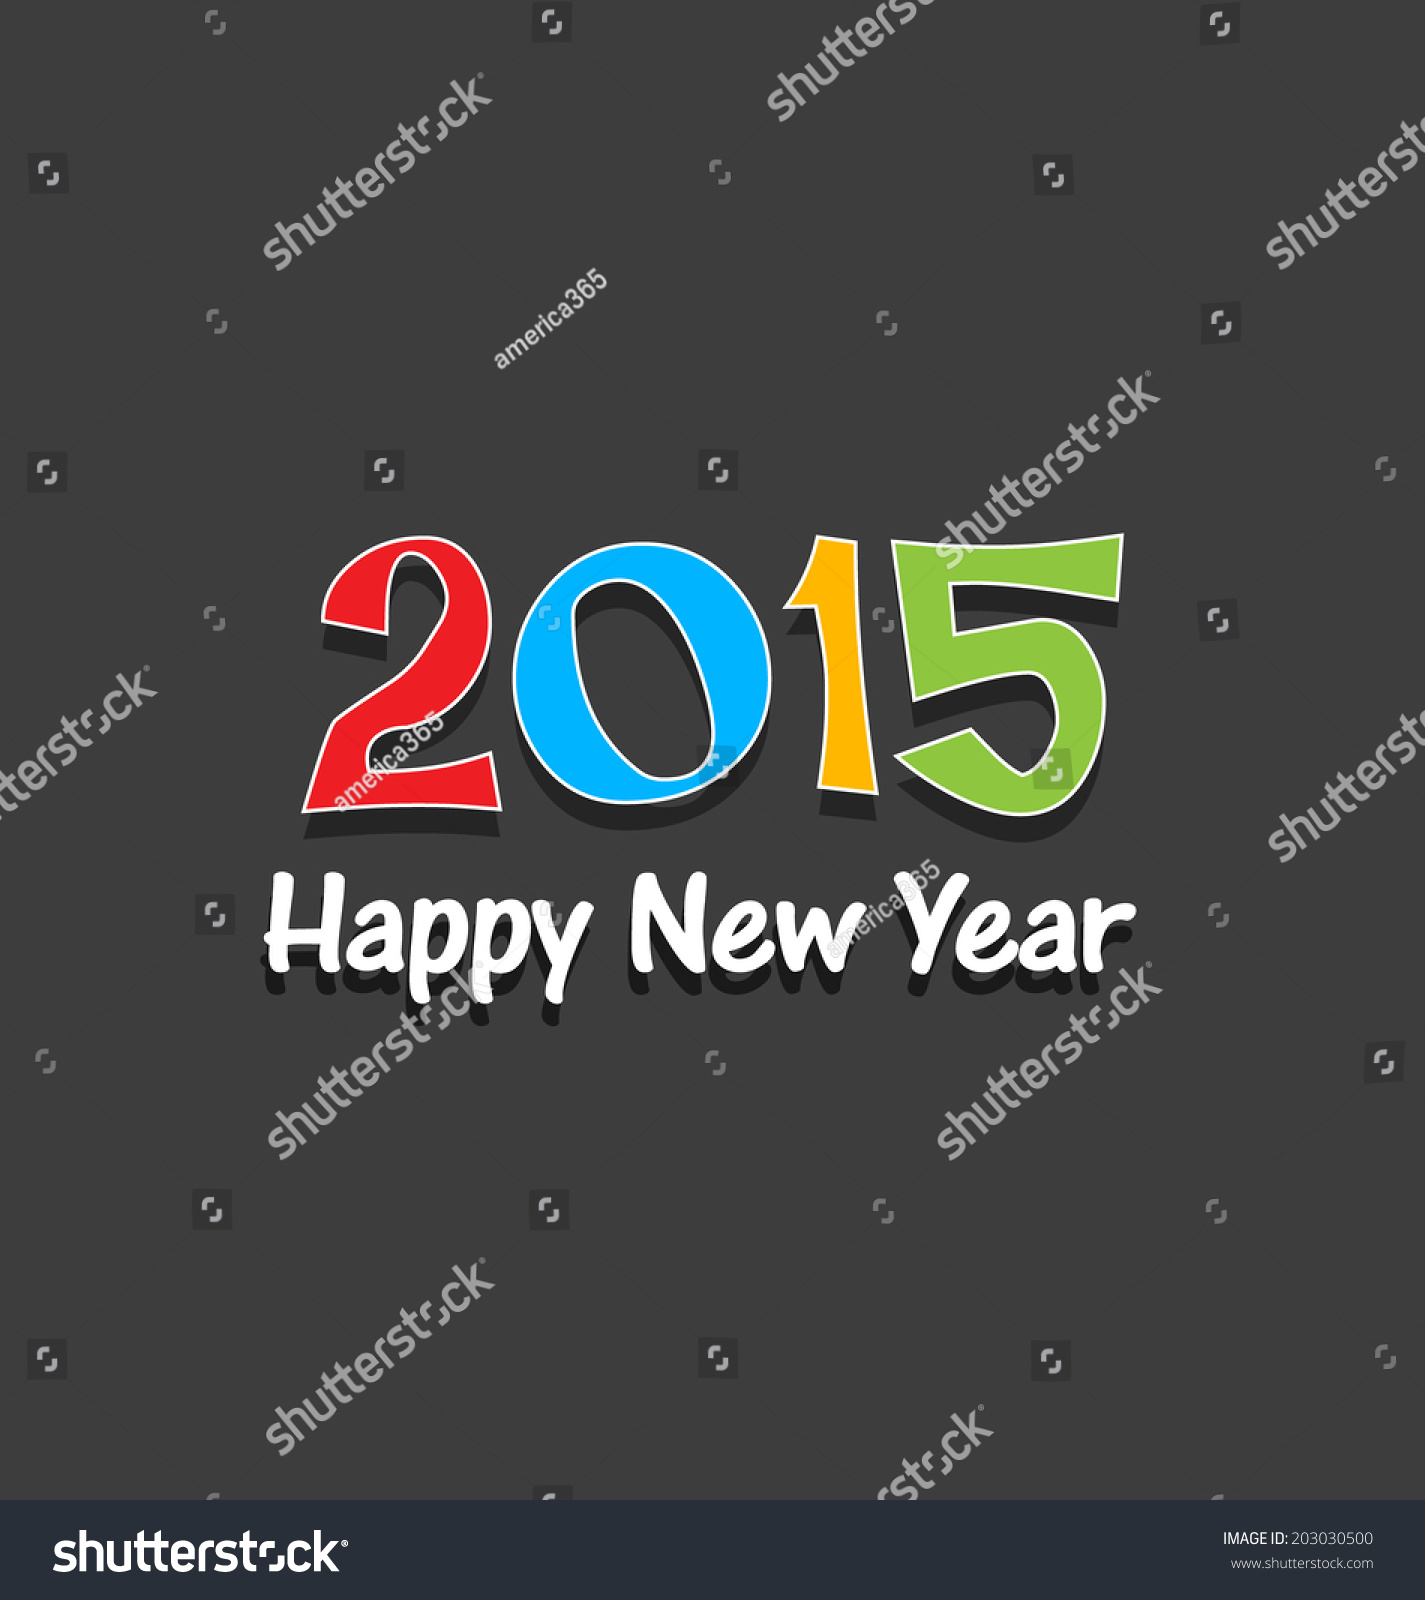 Happy New Year 2015 Greeting Card Stock Vector 203030500 Shutterstock